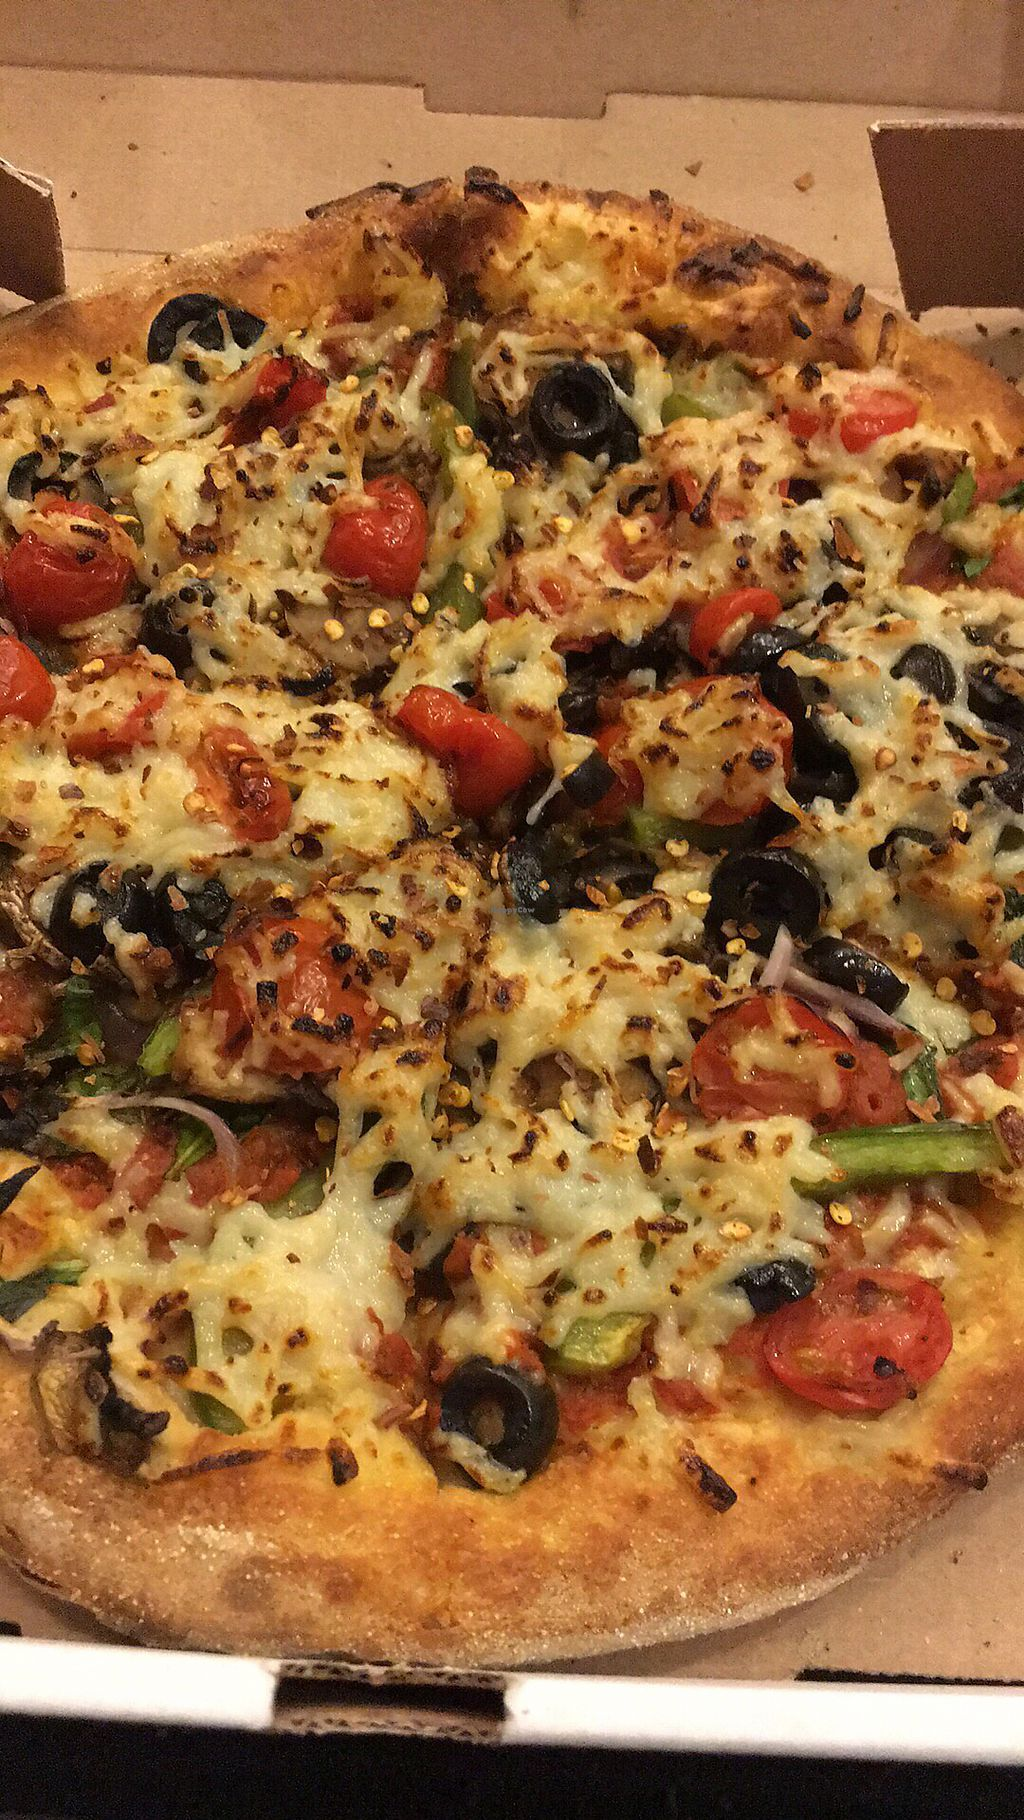 "Photo of Pizzolis  by <a href=""/members/profile/LaurenMilord"">LaurenMilord</a> <br/>Veggie pizza wth vegan cheese for an extra $2 <br/> March 31, 2018  - <a href='/contact/abuse/image/107853/378977'>Report</a>"